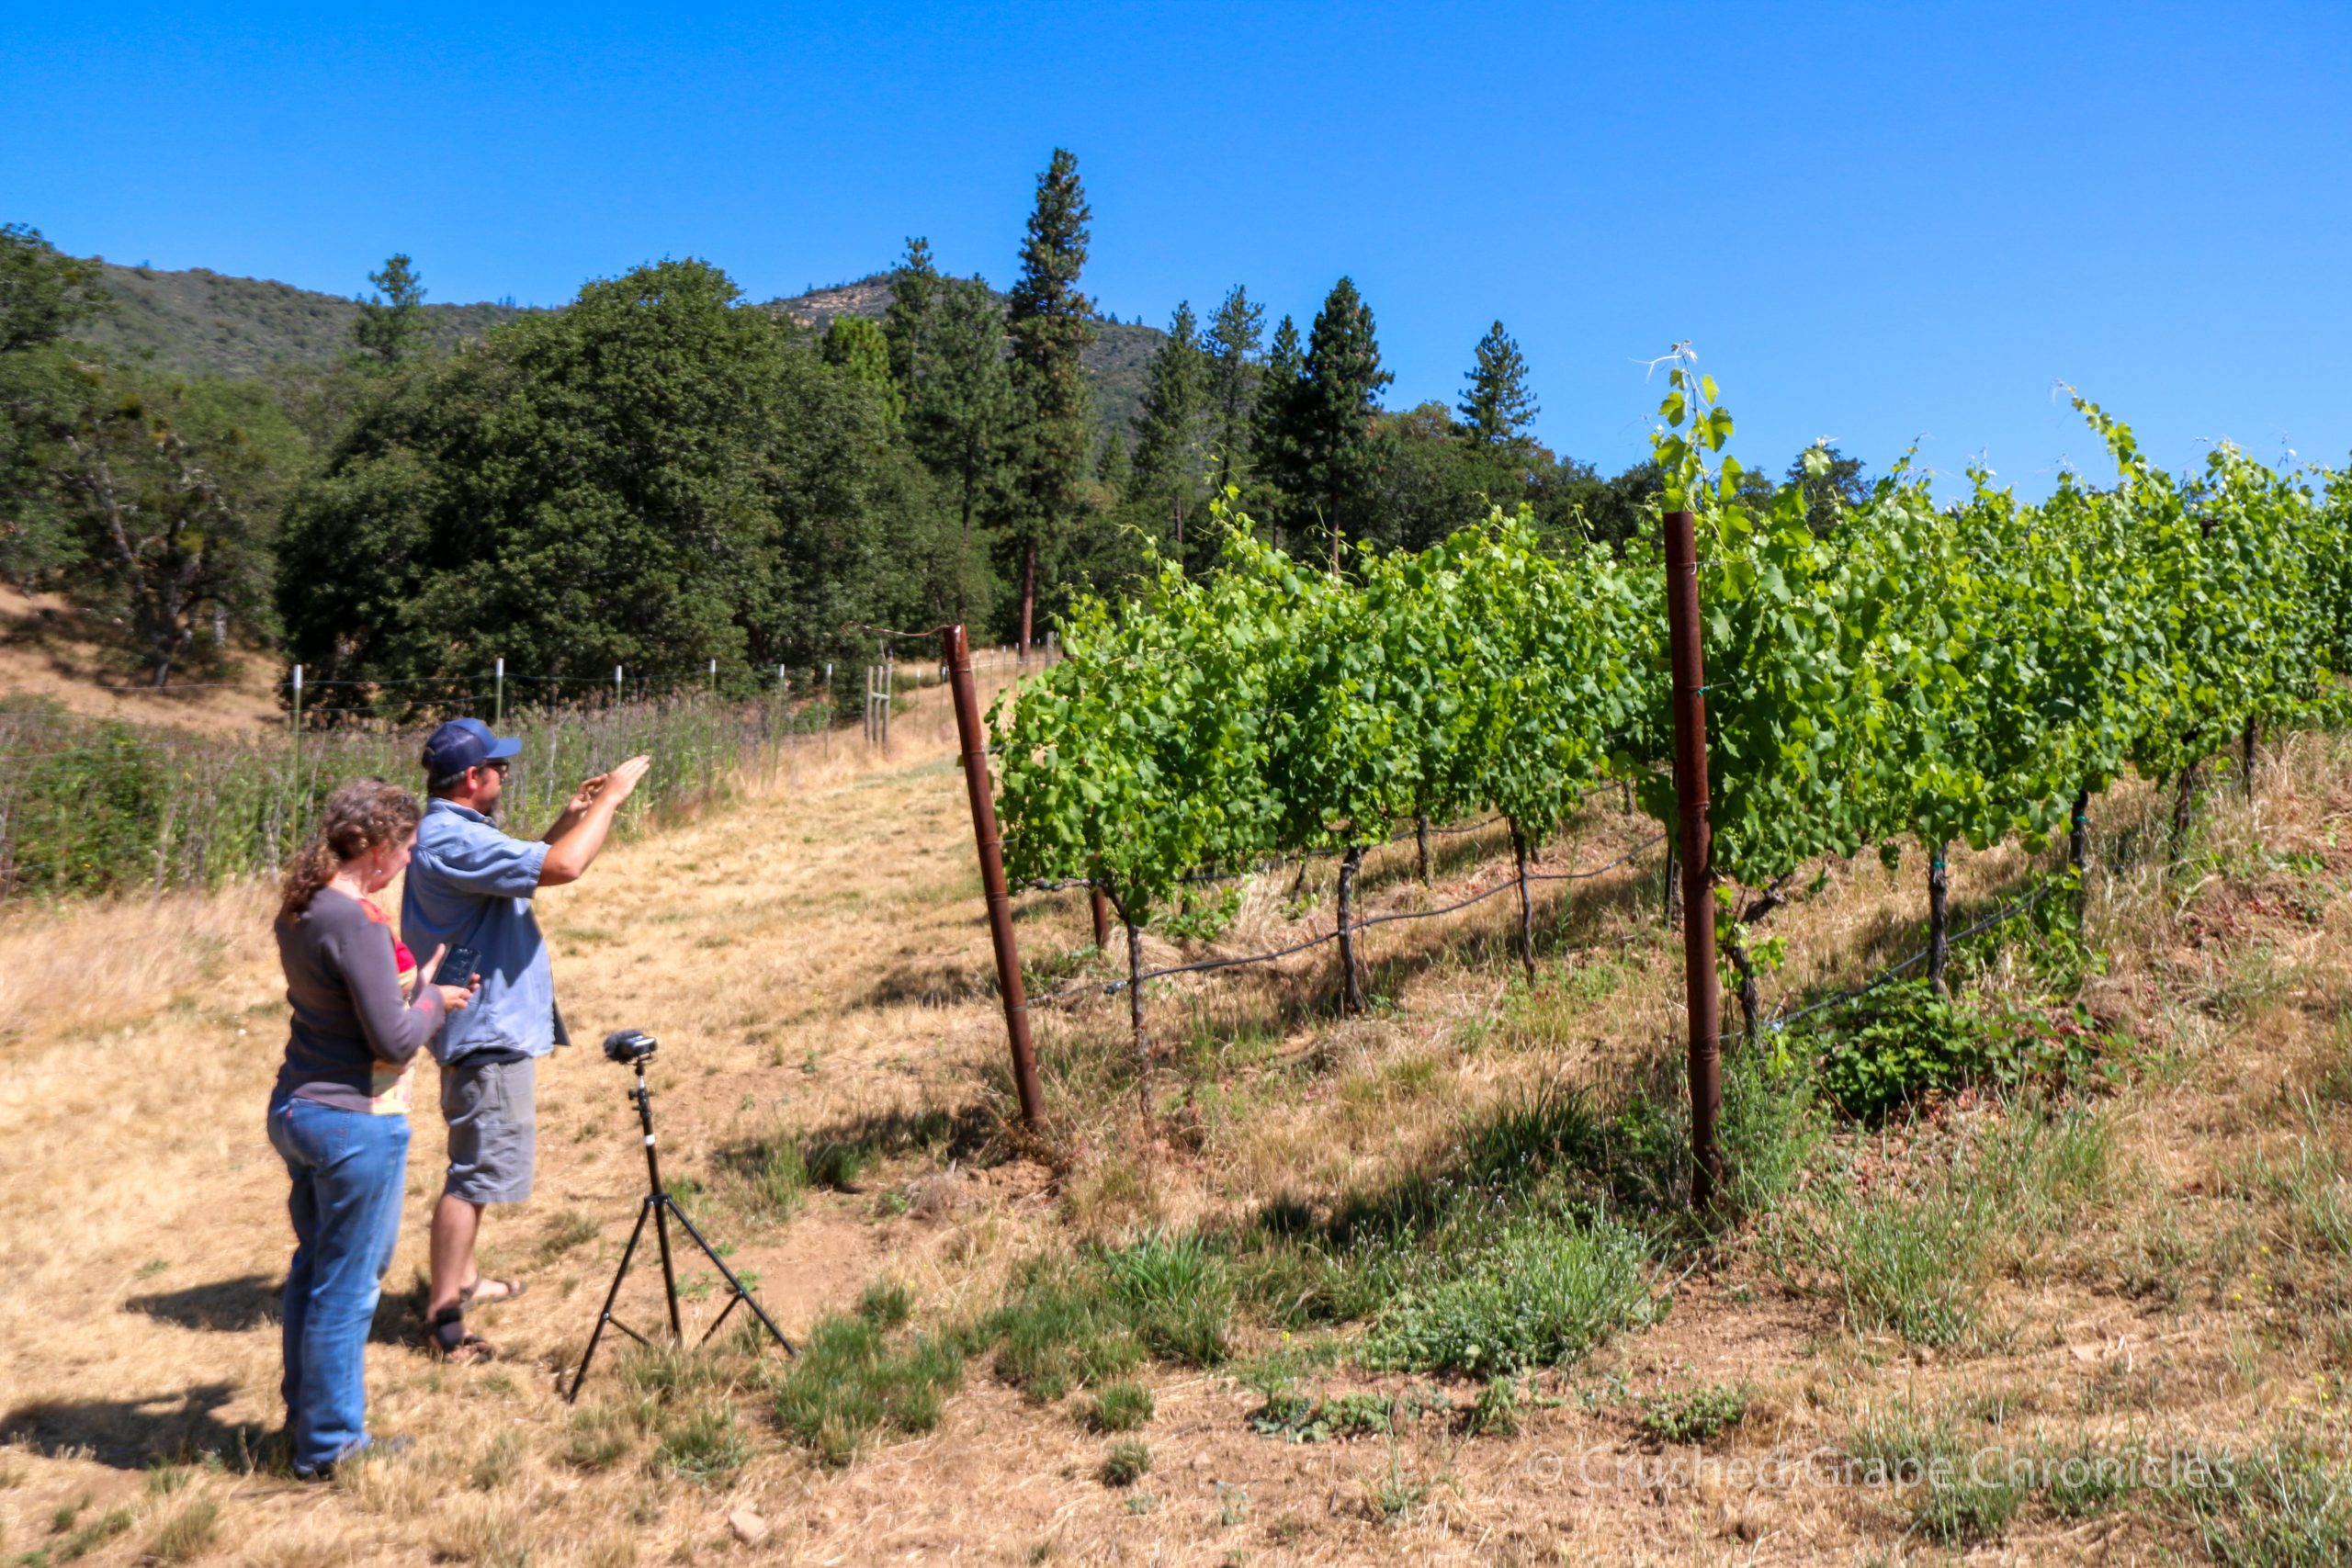 Herb showing me around the Mae's Vineyard at Quady North in Southern Oregon's Applegate Valley AVA